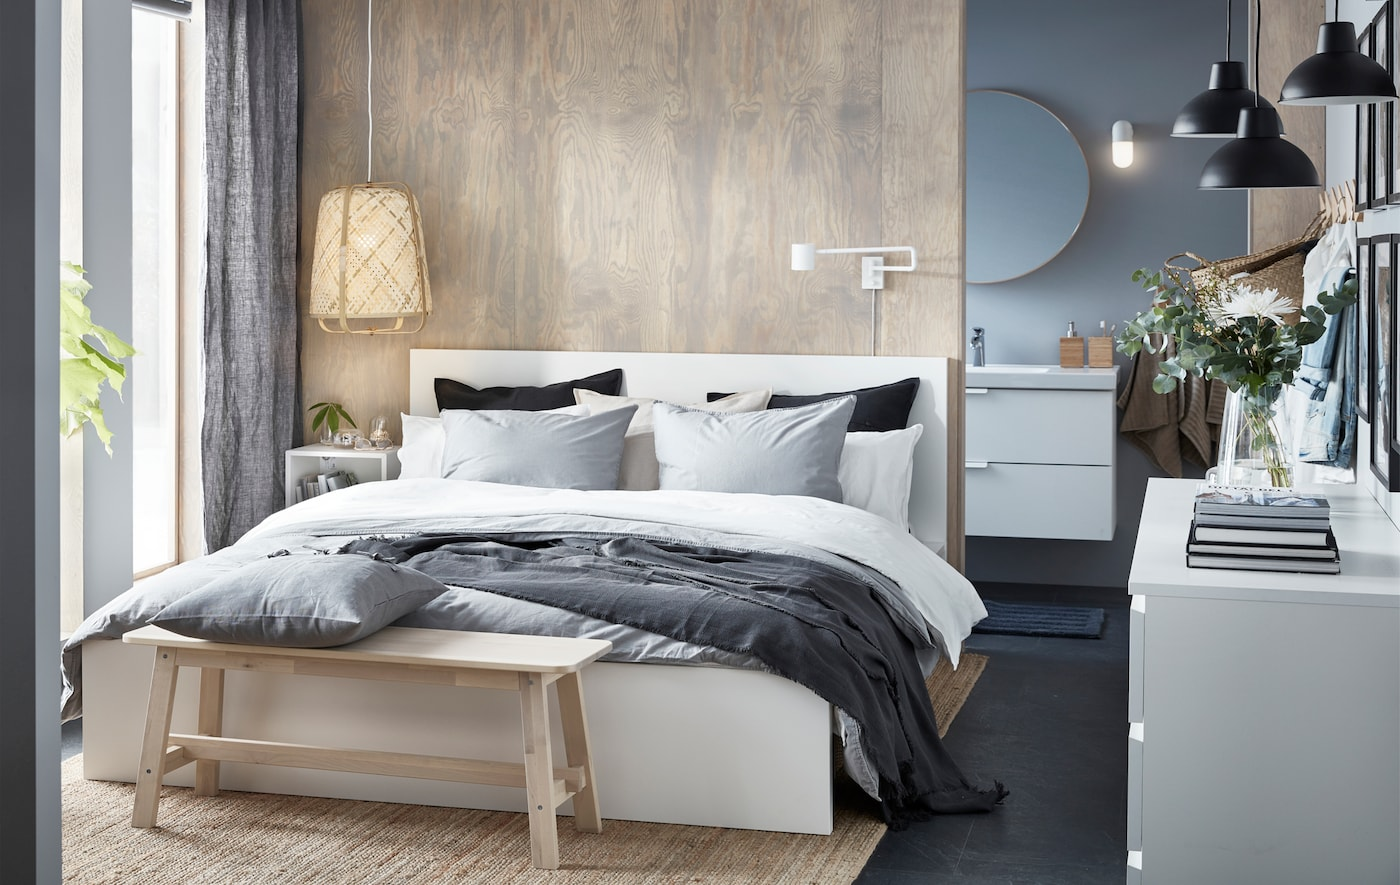 Minimalist Luxury In A Small And Stylish Bedroom Ikea